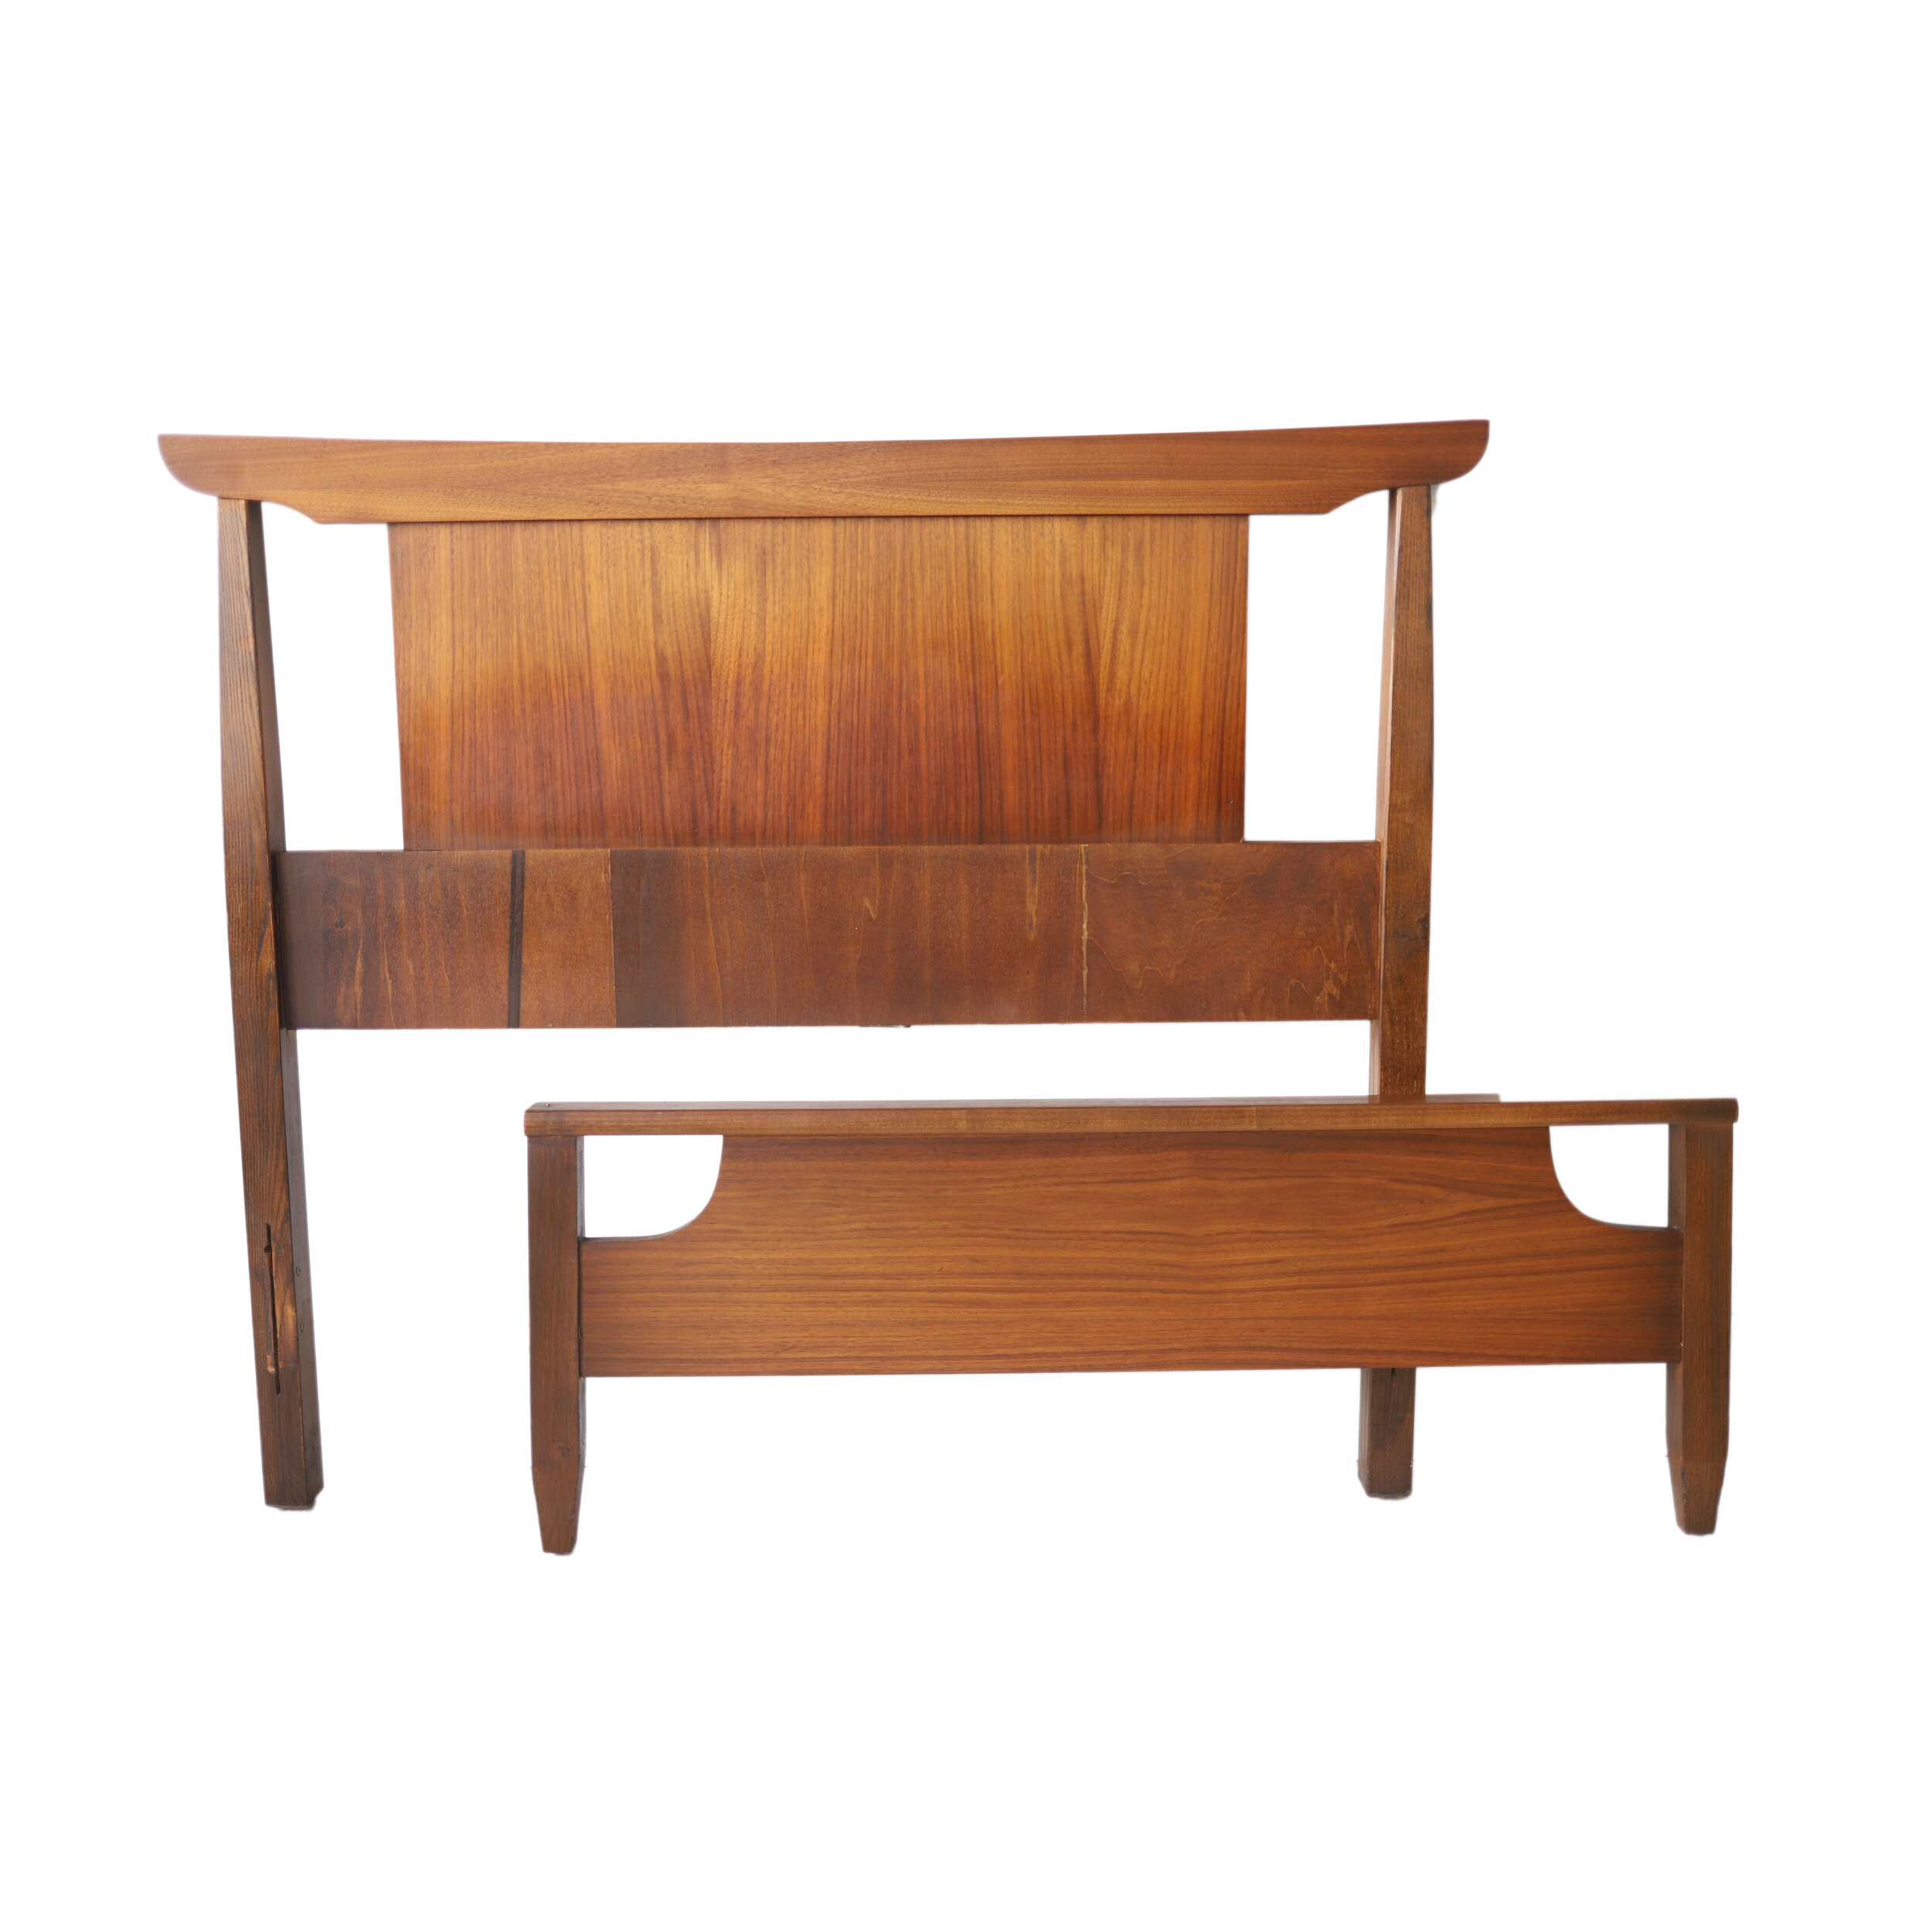 At 1st Sight New Products Vintage Mid Century Modern Twin